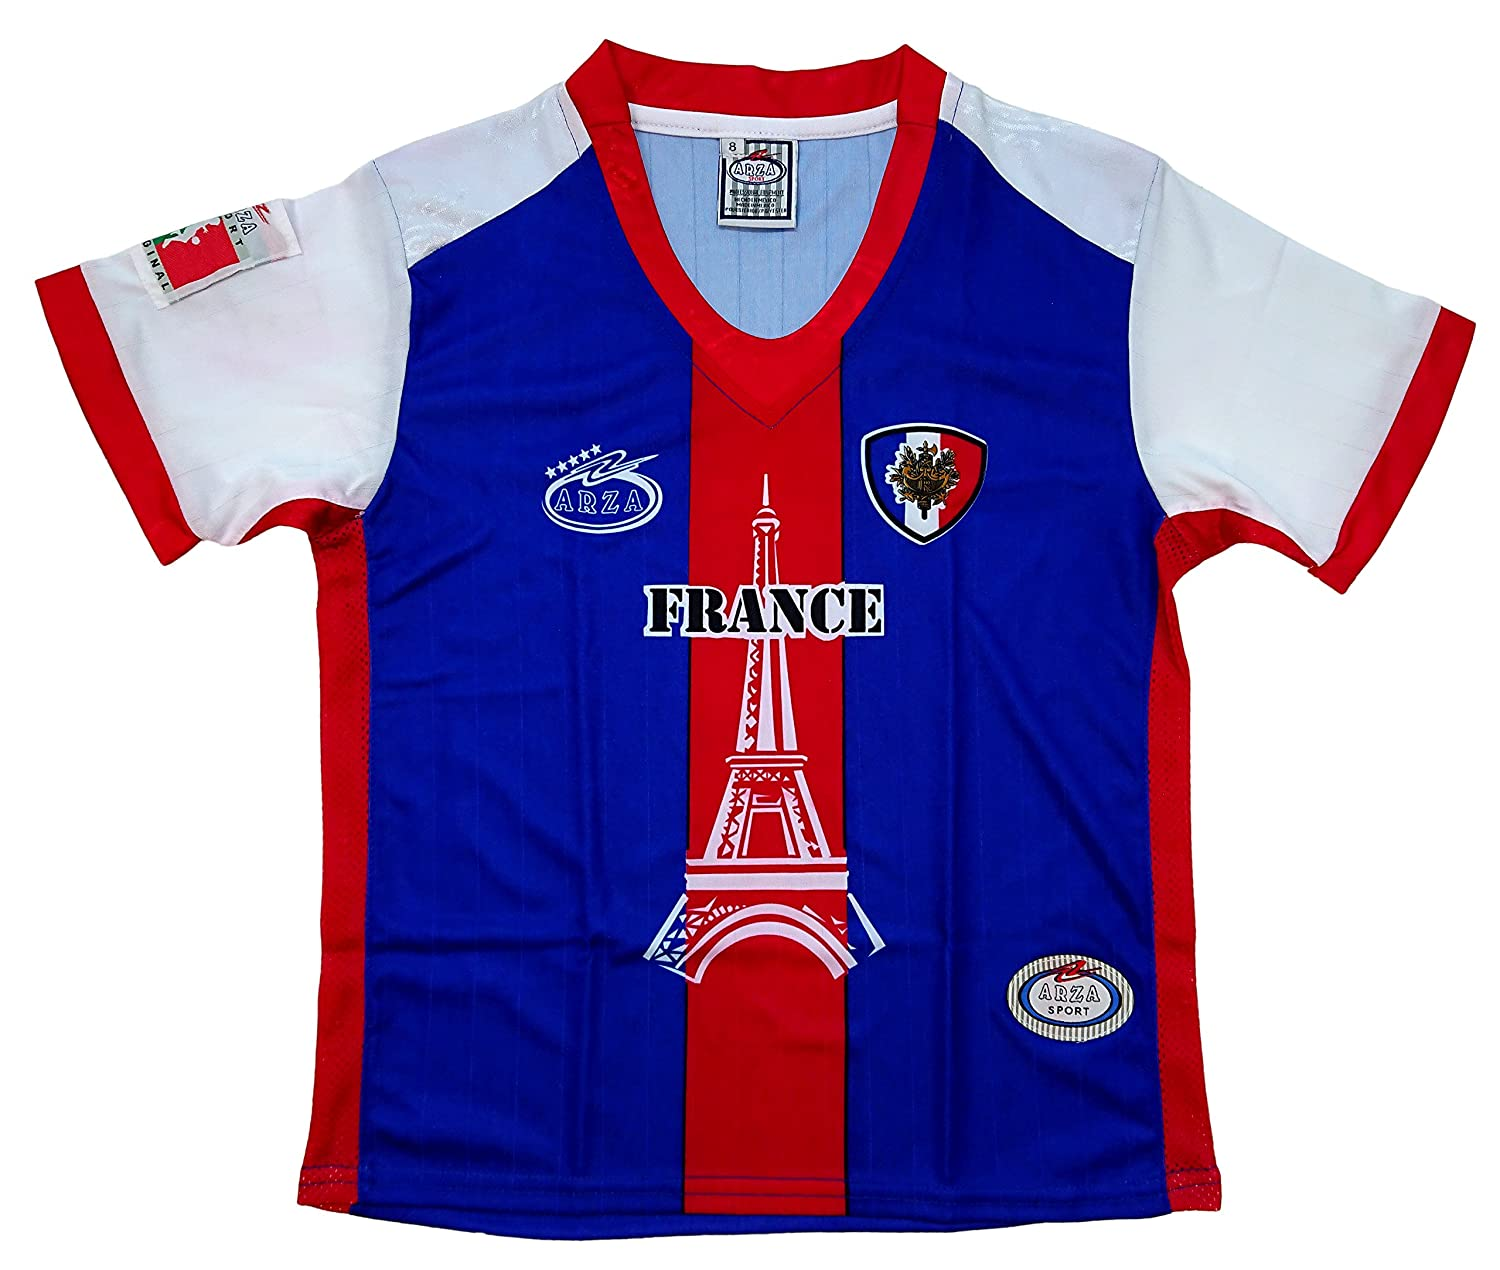 16611a3fd Amazon.com  France Arza Youth Soccer Uniform  Clothing